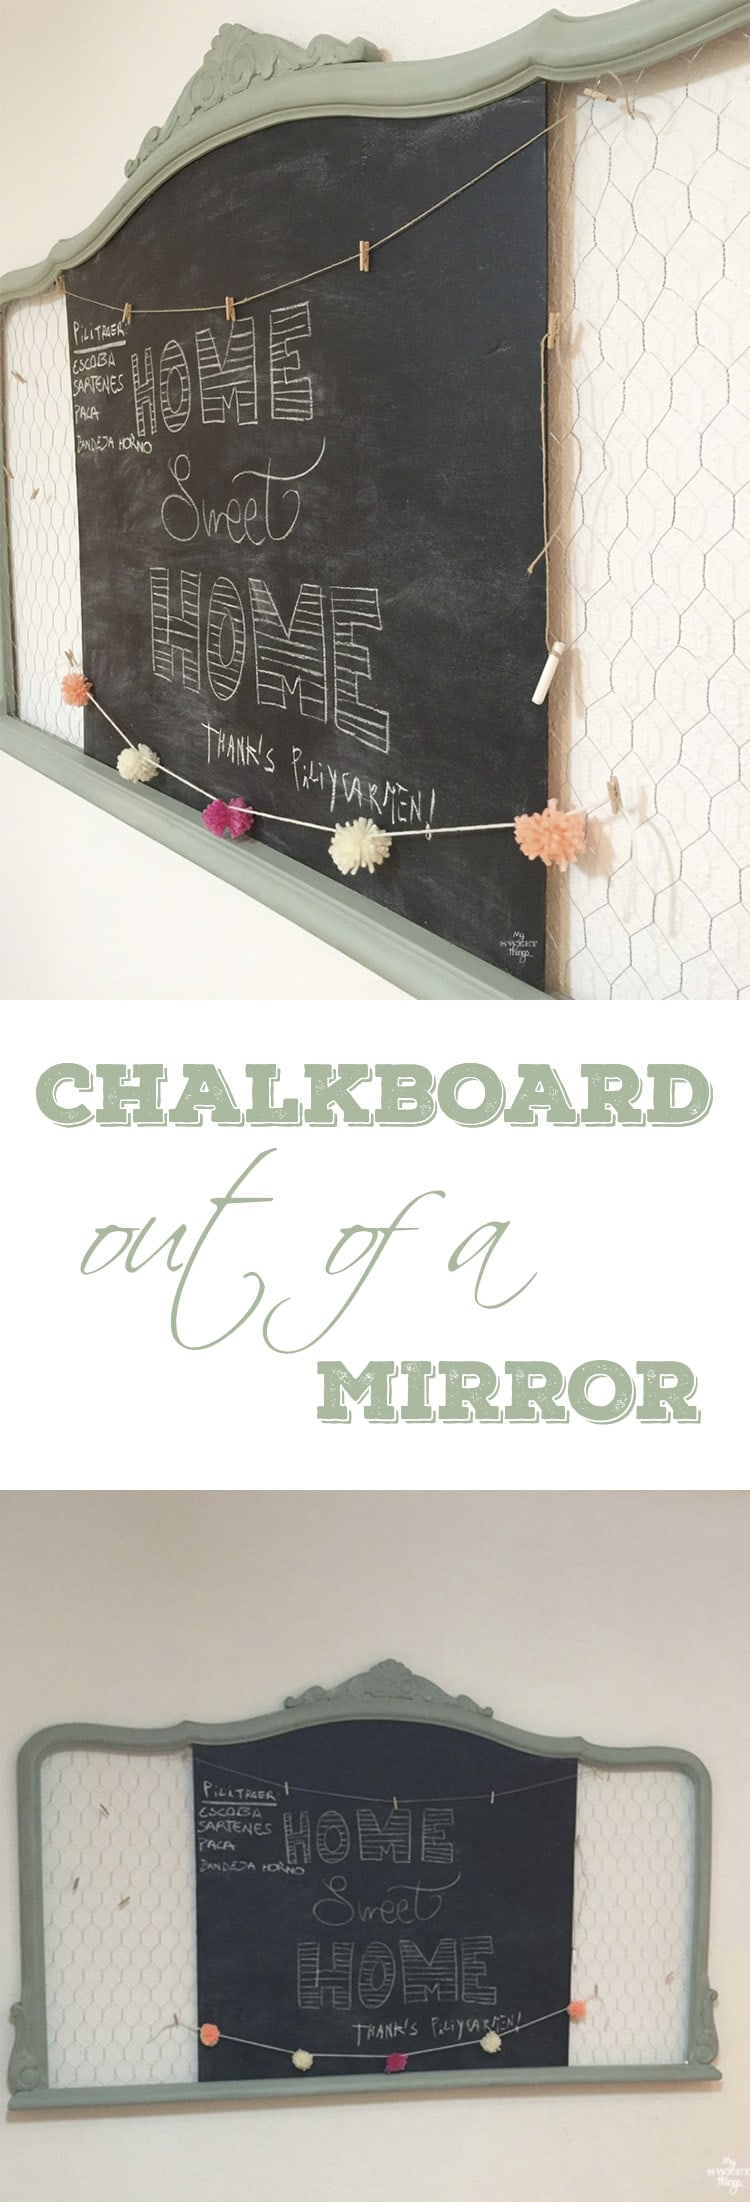 How to make a chalkboard out of a mirror with some paint and chicken wire · Via www.sweethings.net